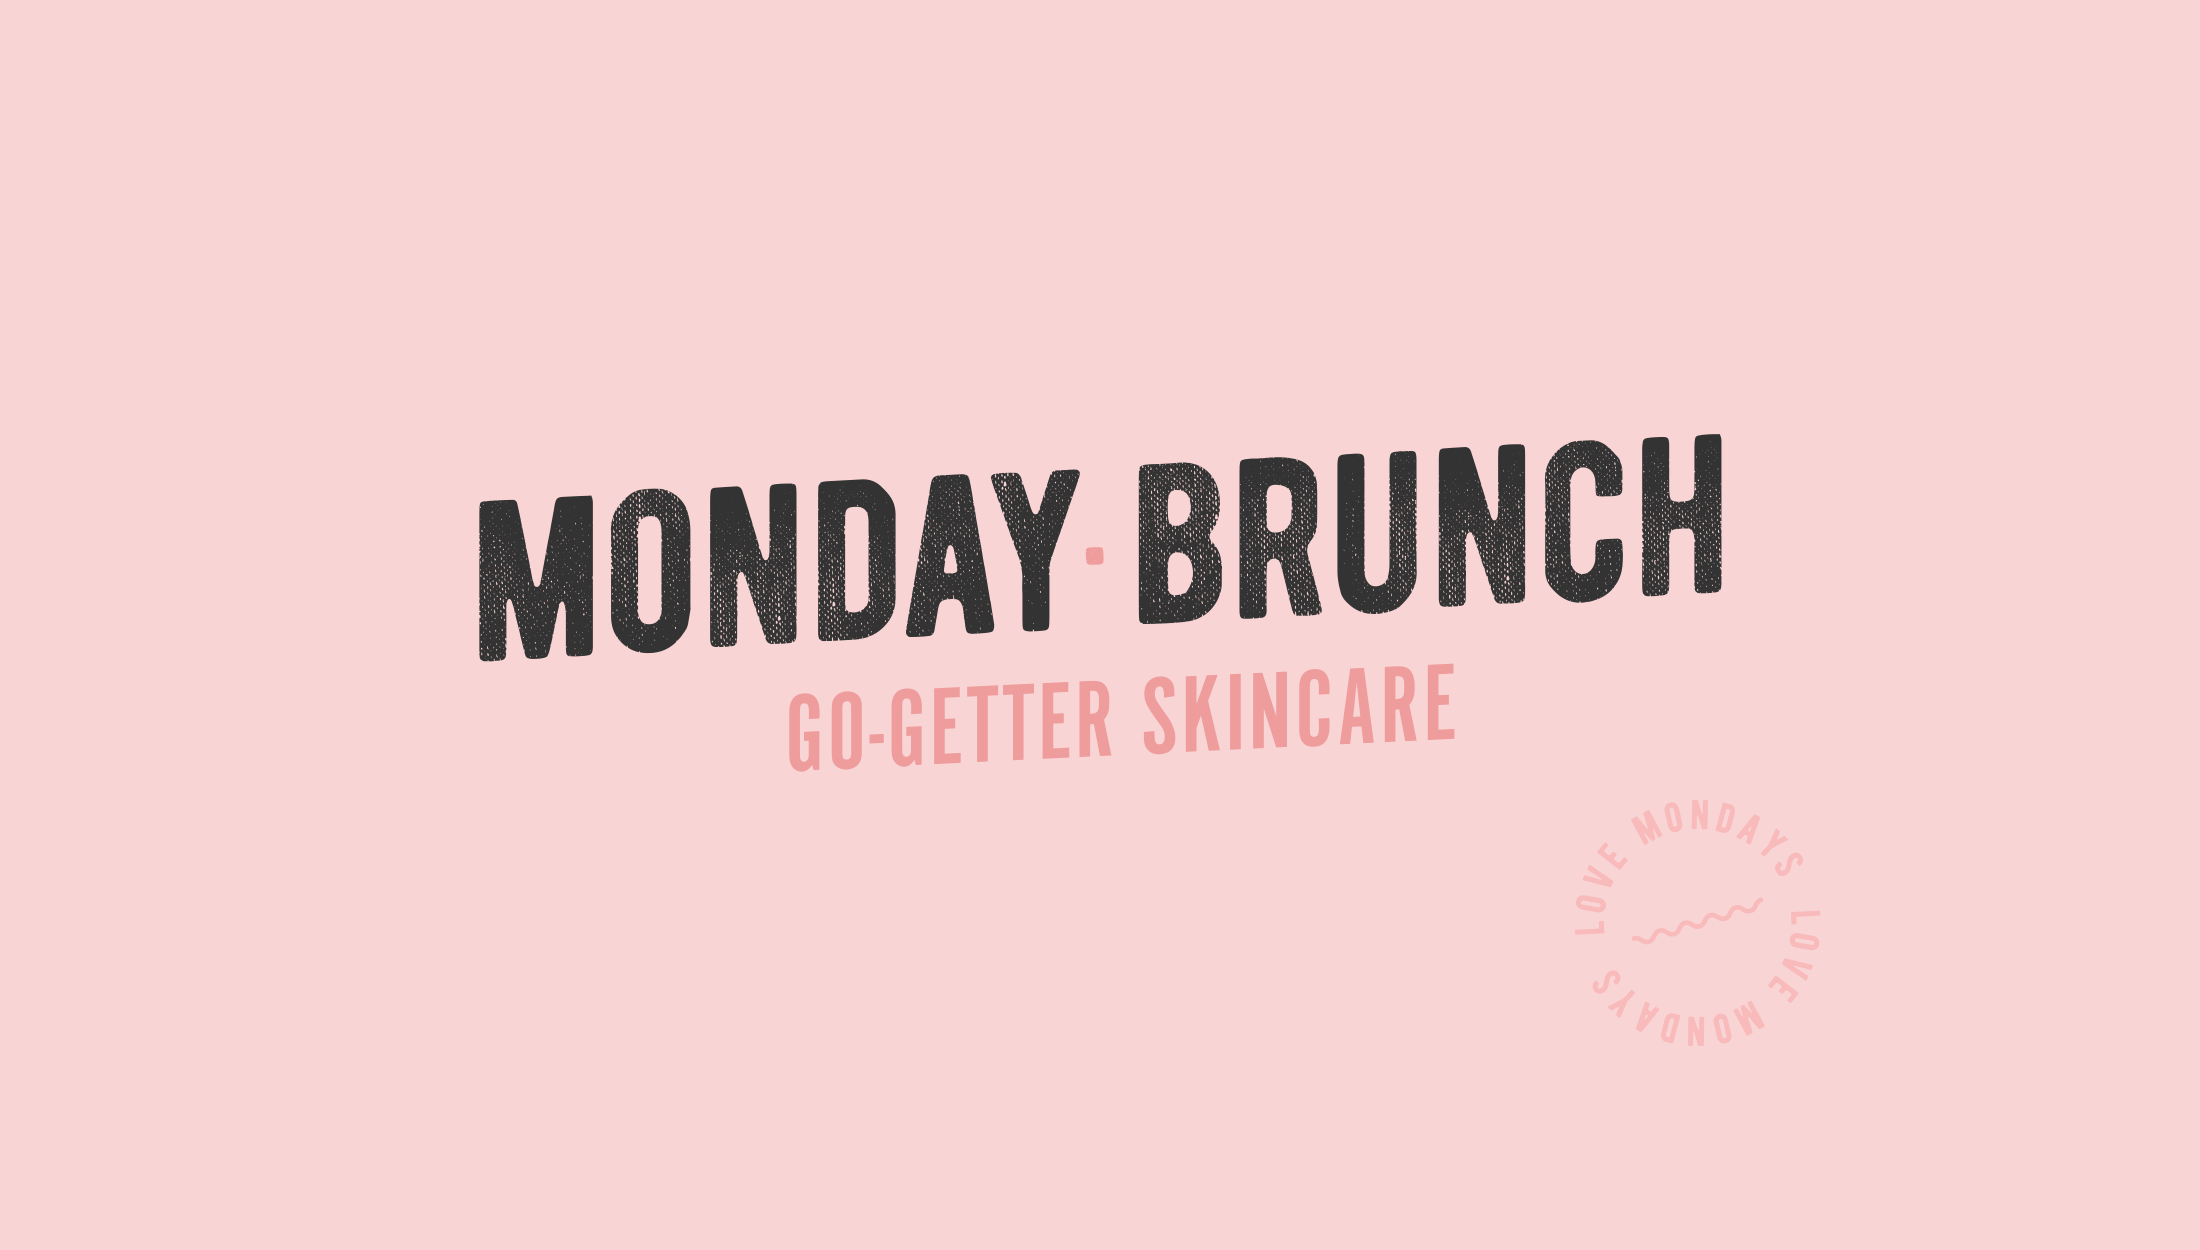 Final horizontal logo design for Monday Brunch, a skincare line that aims to bring high-quality products and positivity to it's customers, no matter what day of the week - designed by Wiltshire-based graphic designer, Kaye Huett